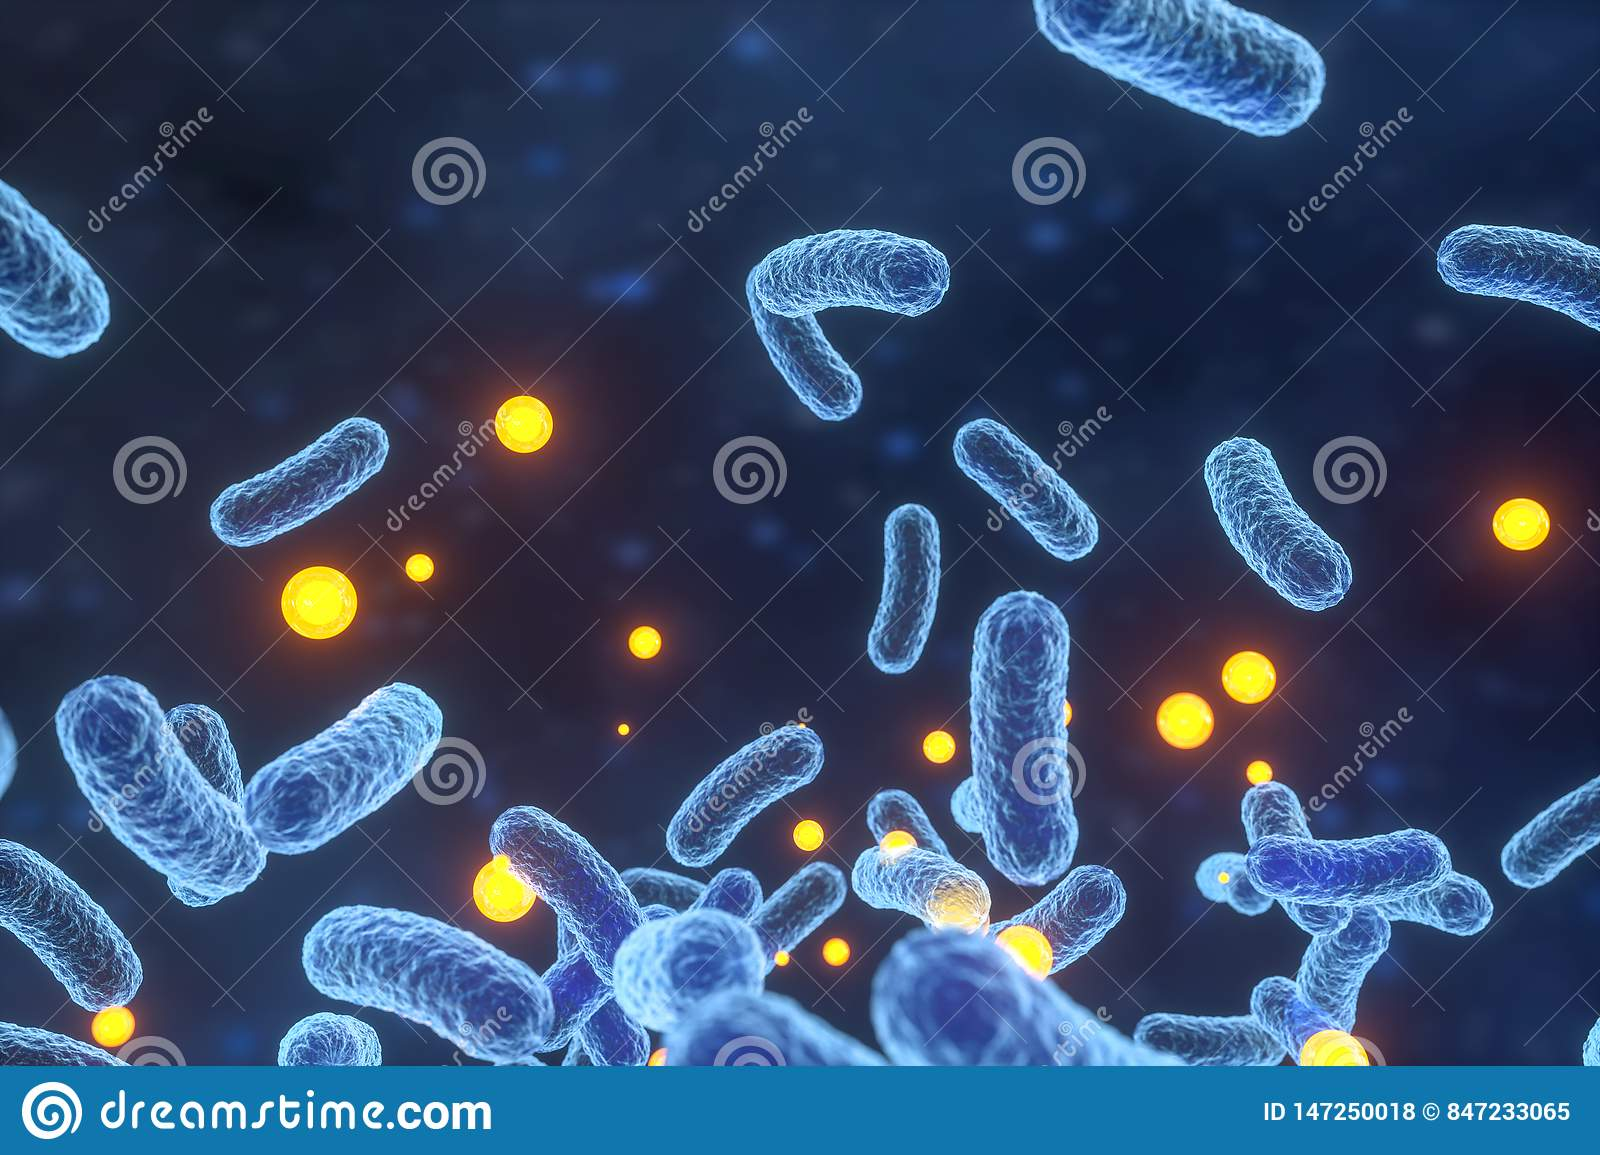 Infectious virus with surface details on blue background, 3d rendering